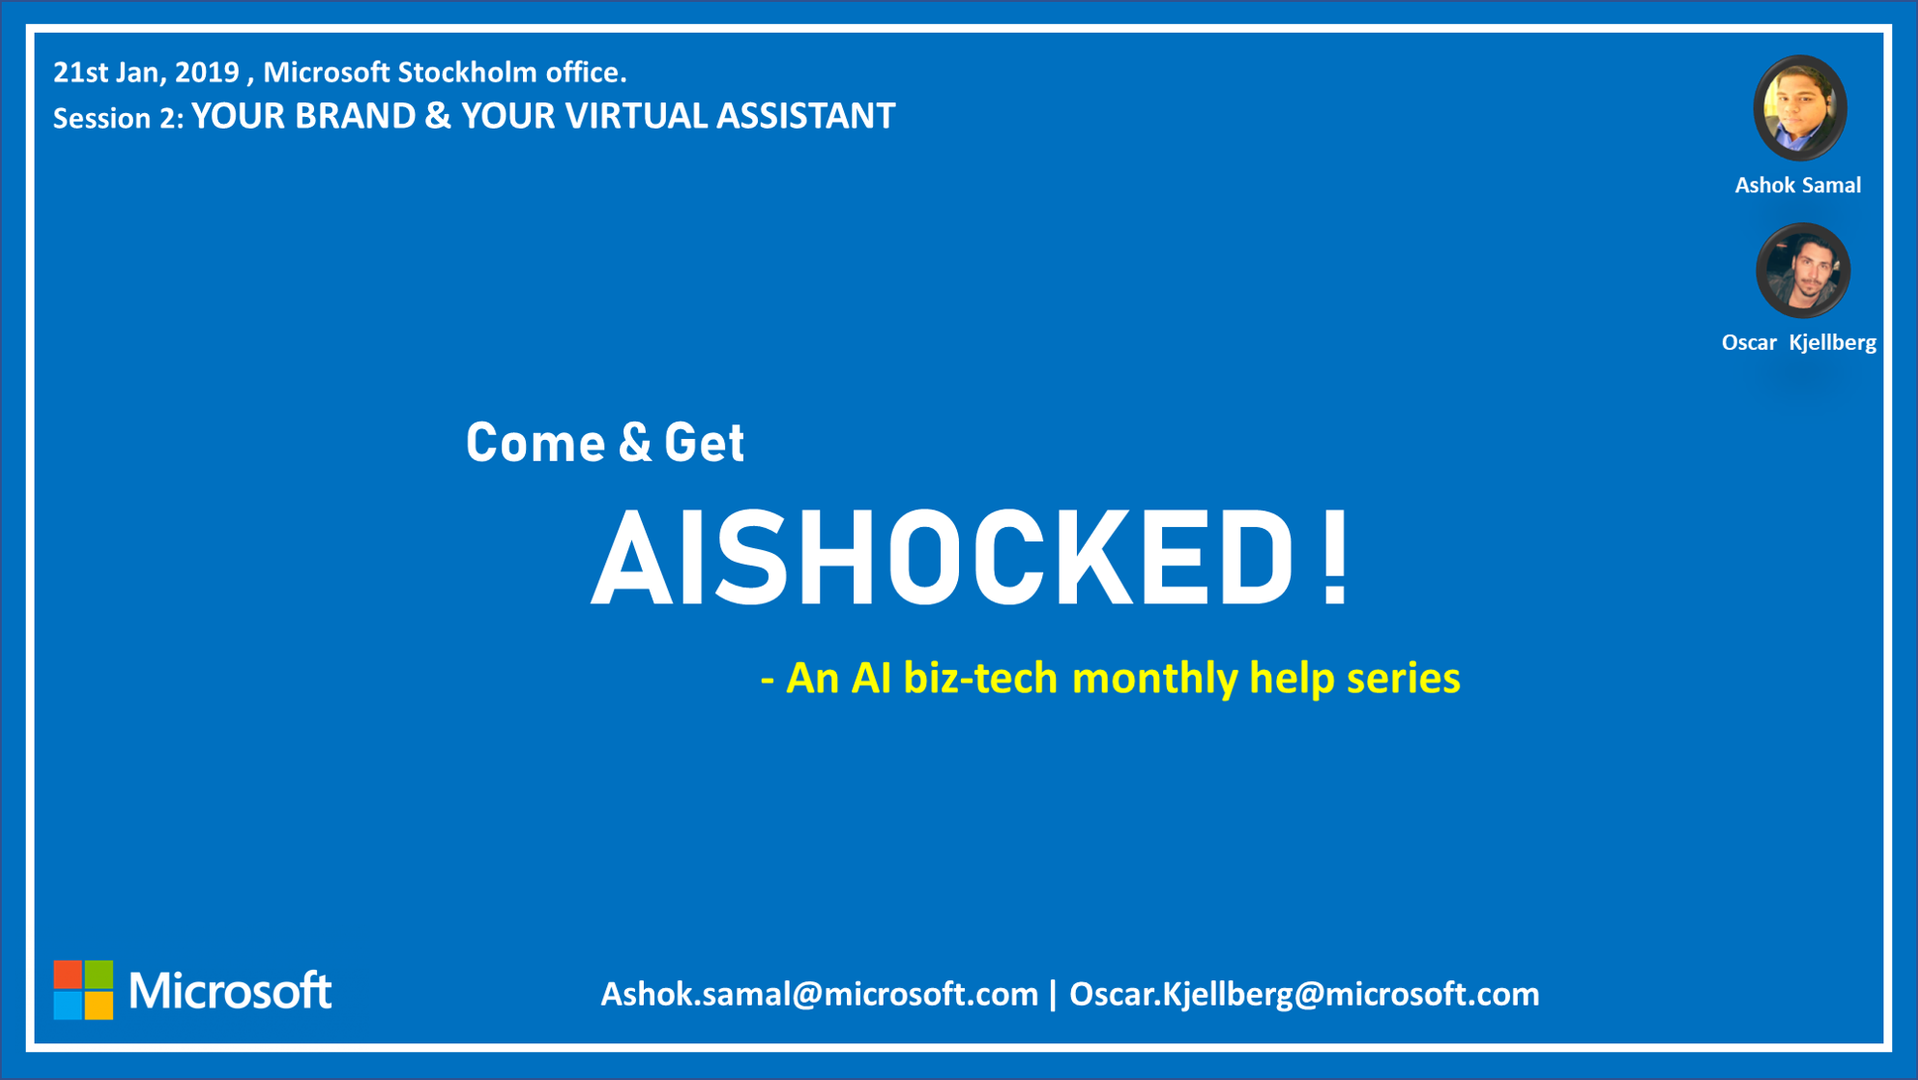 AI-SHOCKED - Your Brand & Your Virtual Assistant